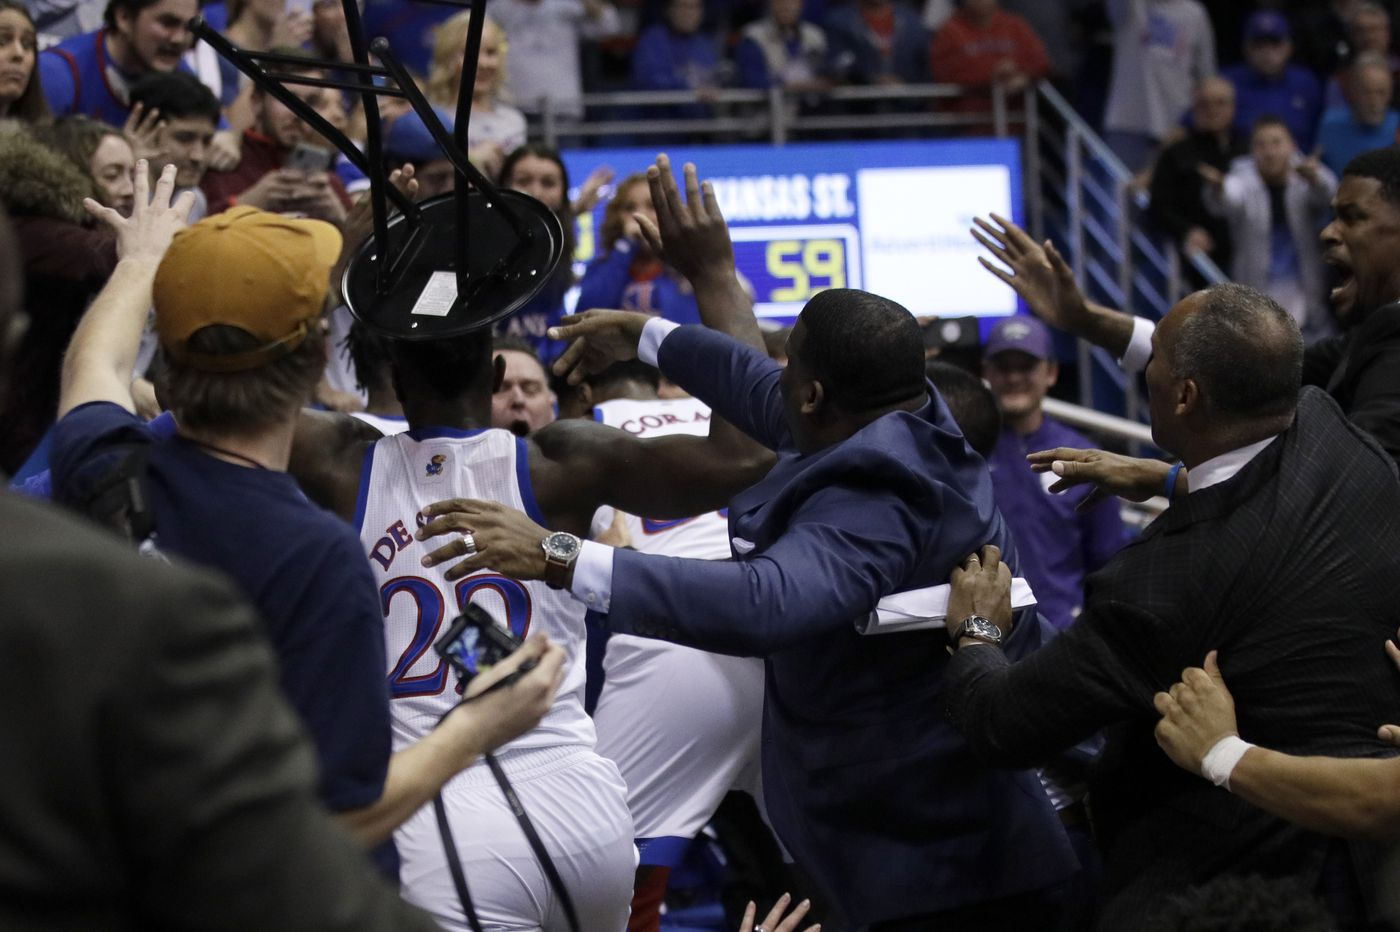 College basketball: A strange week given the top-25 rankings and a brawl at Kansas